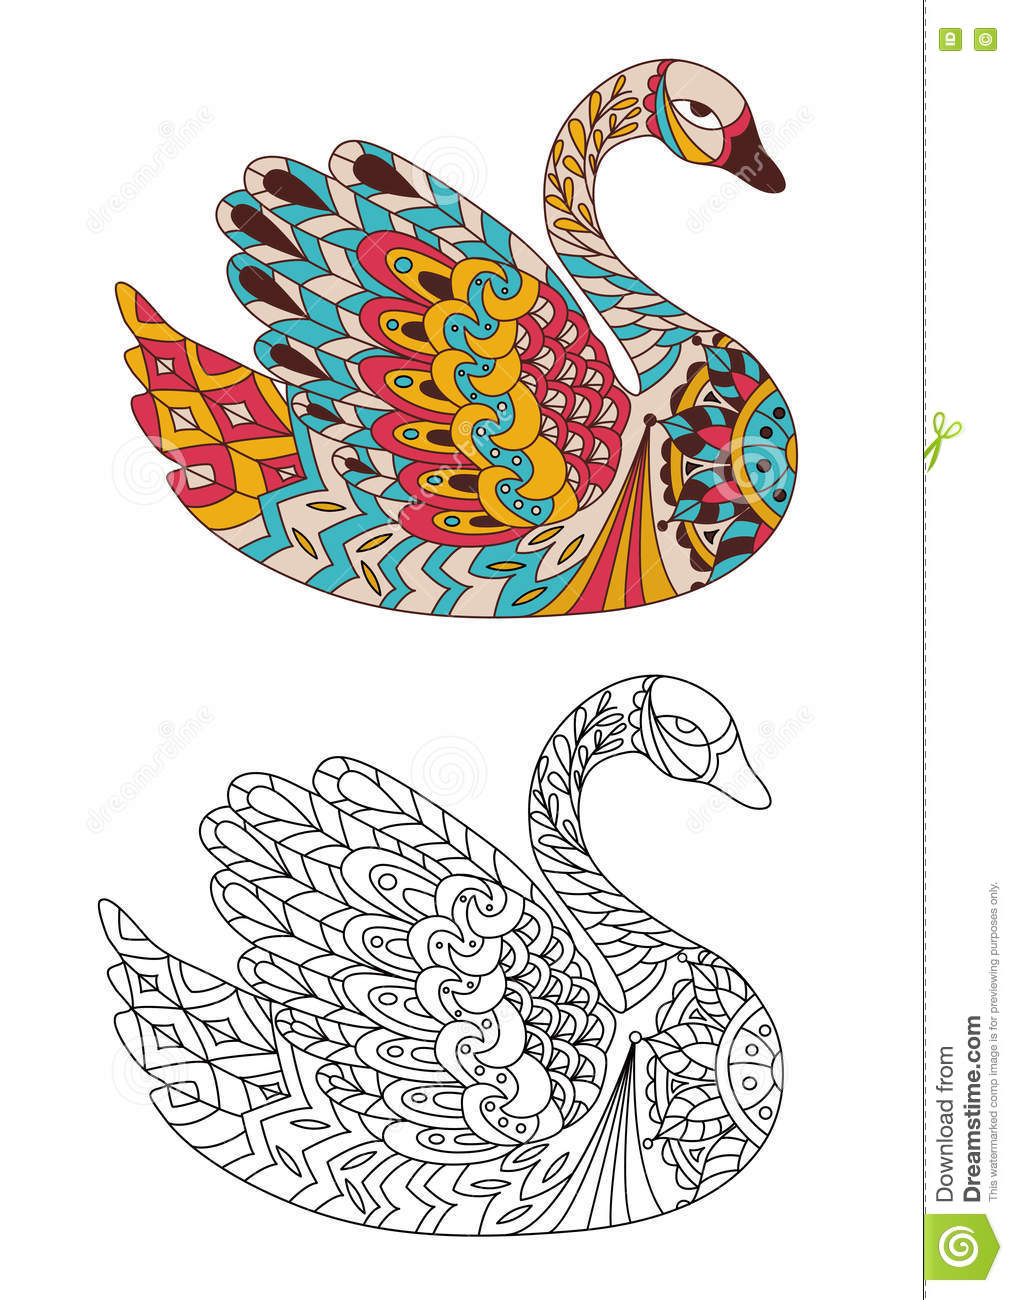 Colorful coloring book for adults download - Printable Coloring Book Page For Adults Swan Design Activity To Older Children And Relax